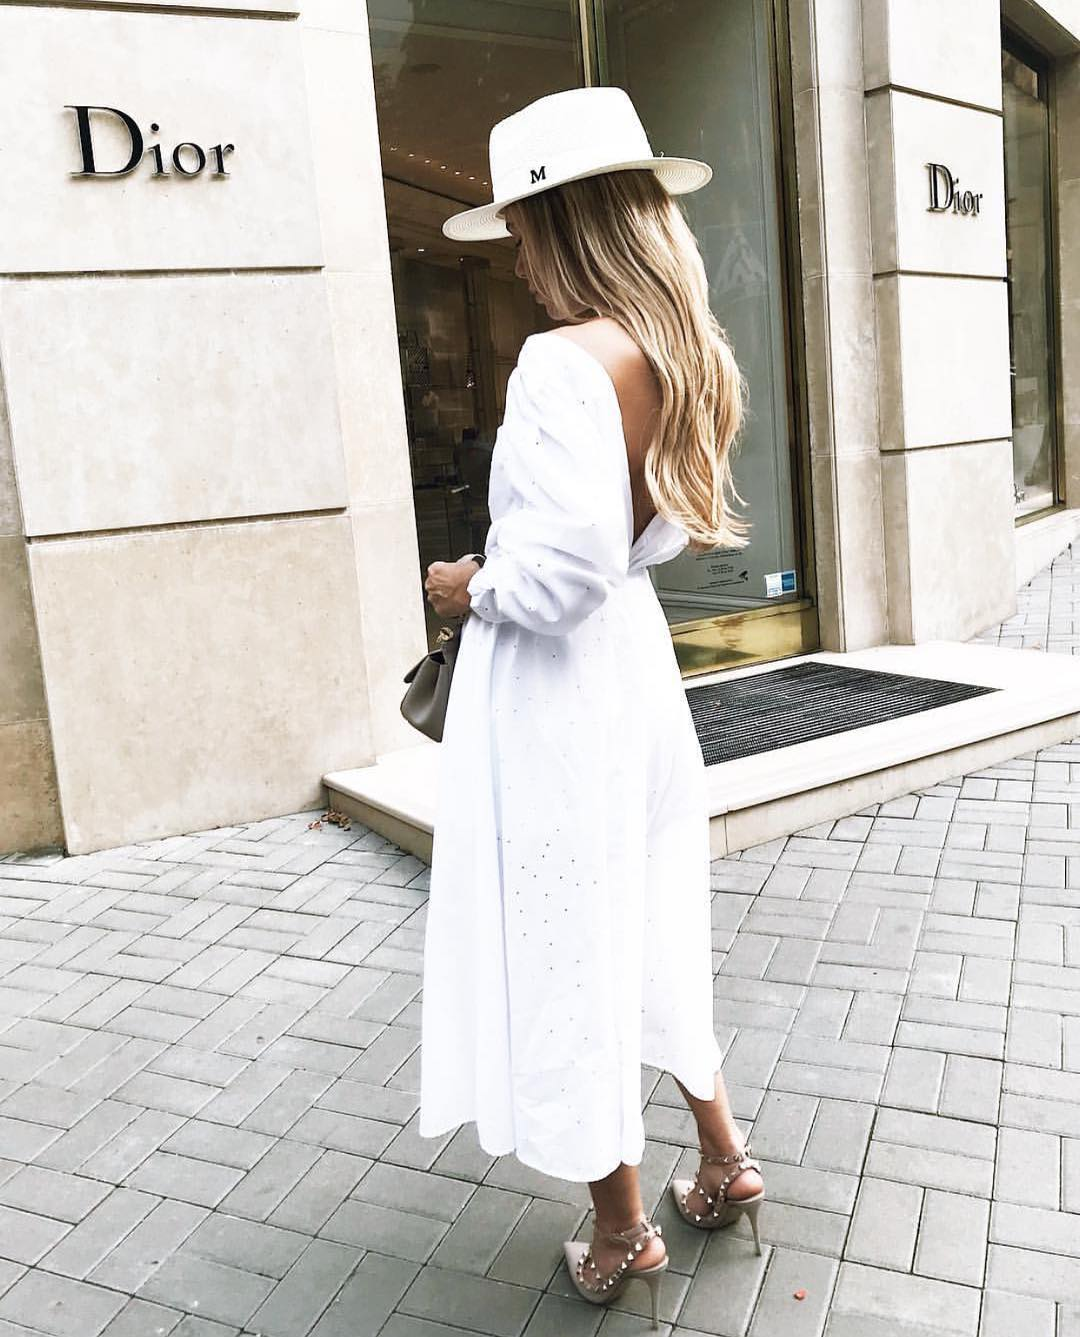 V Open Back White Ankle Length Dress And White Fedora Hat For Summer 2019